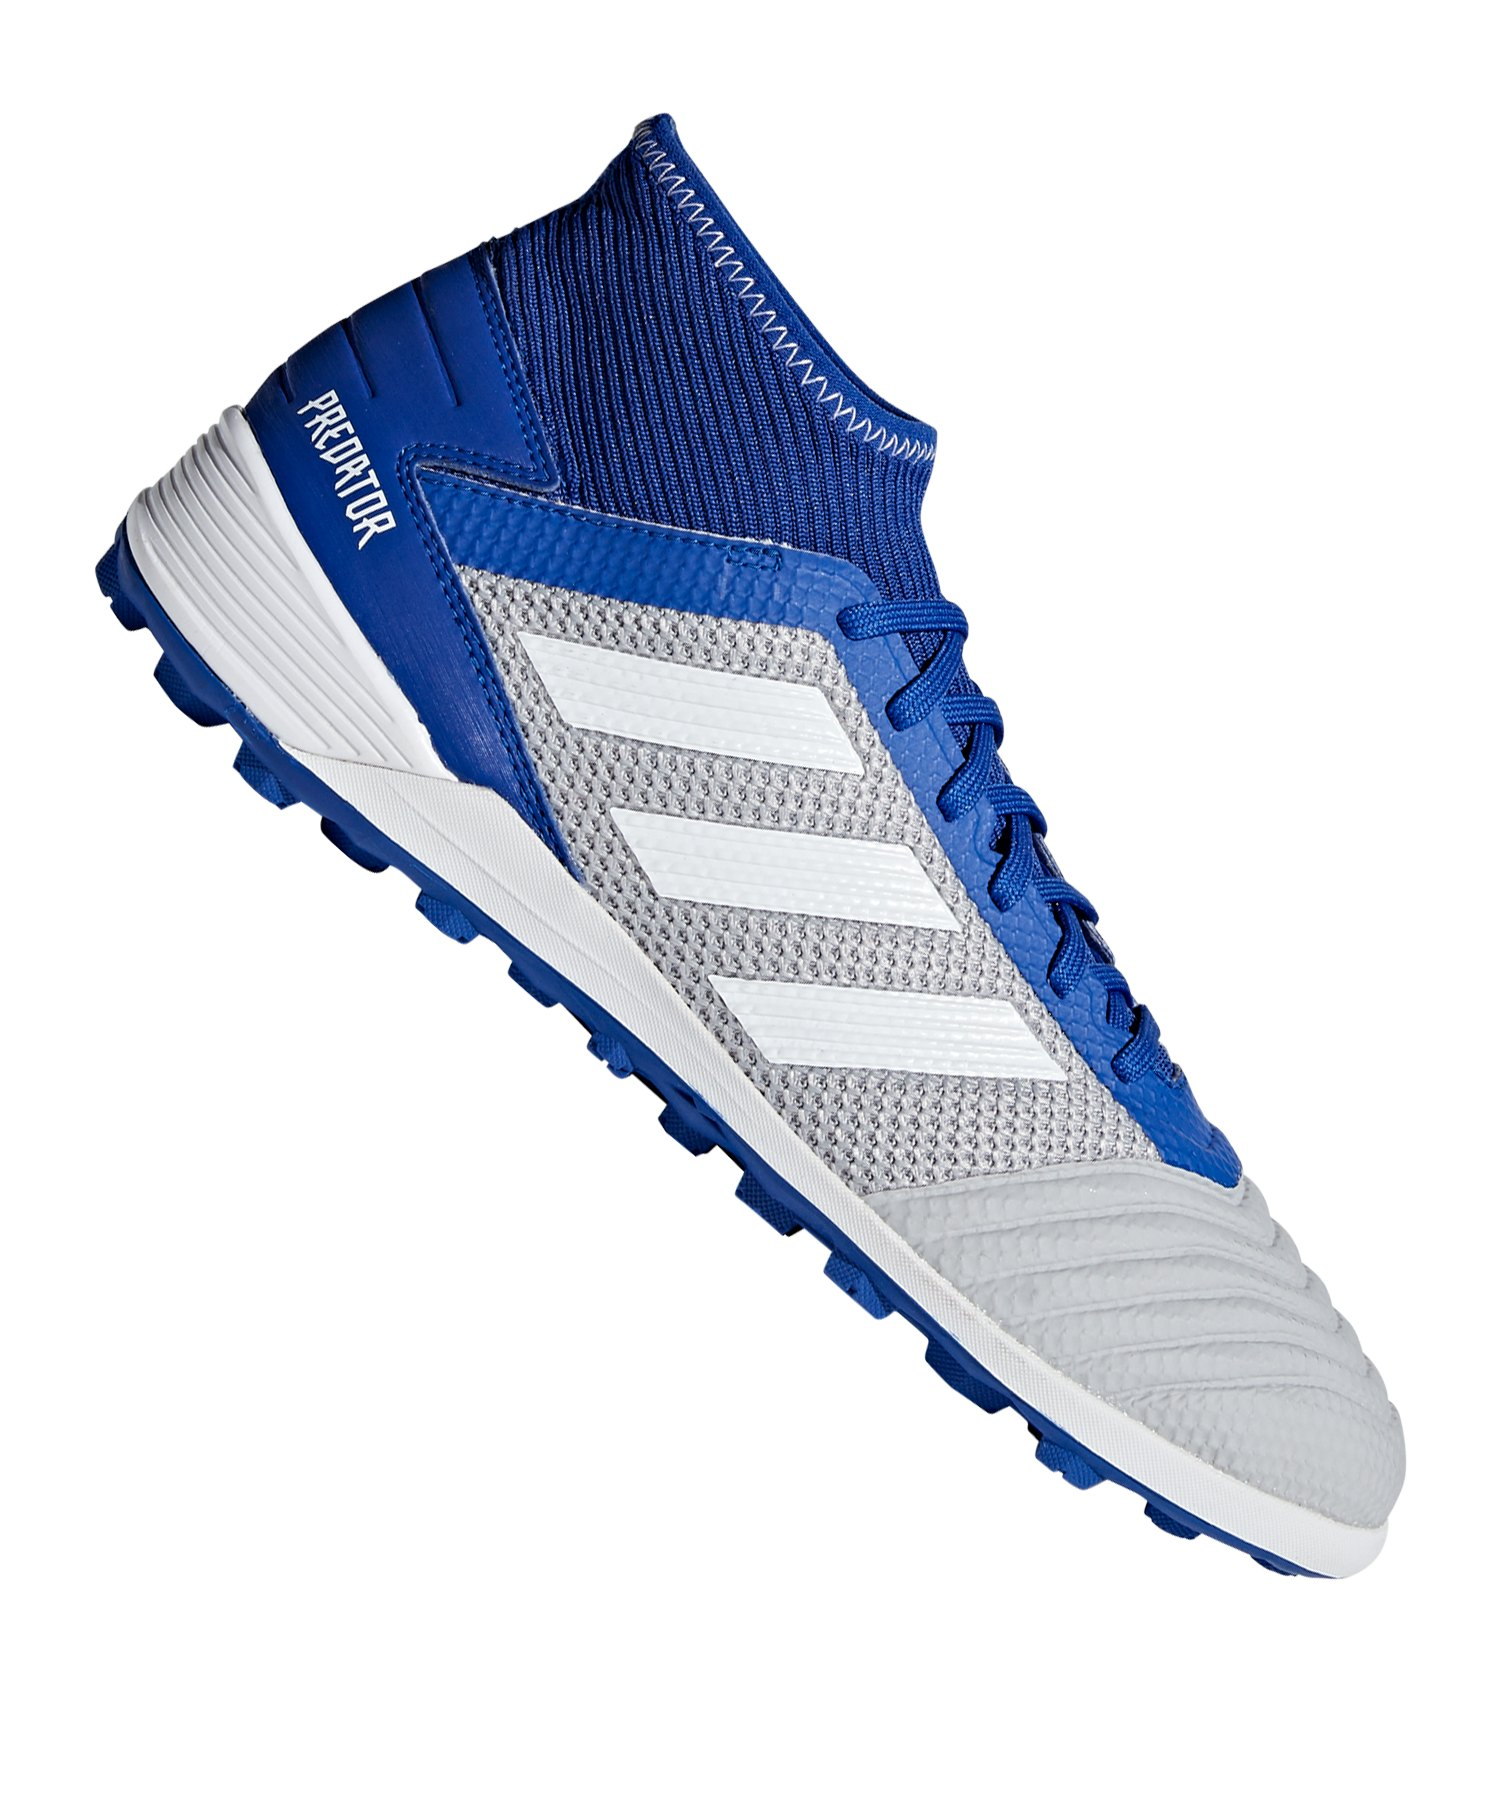 new authentic available sneakers for cheap adidas Predator 19.3 TF Grau Blau